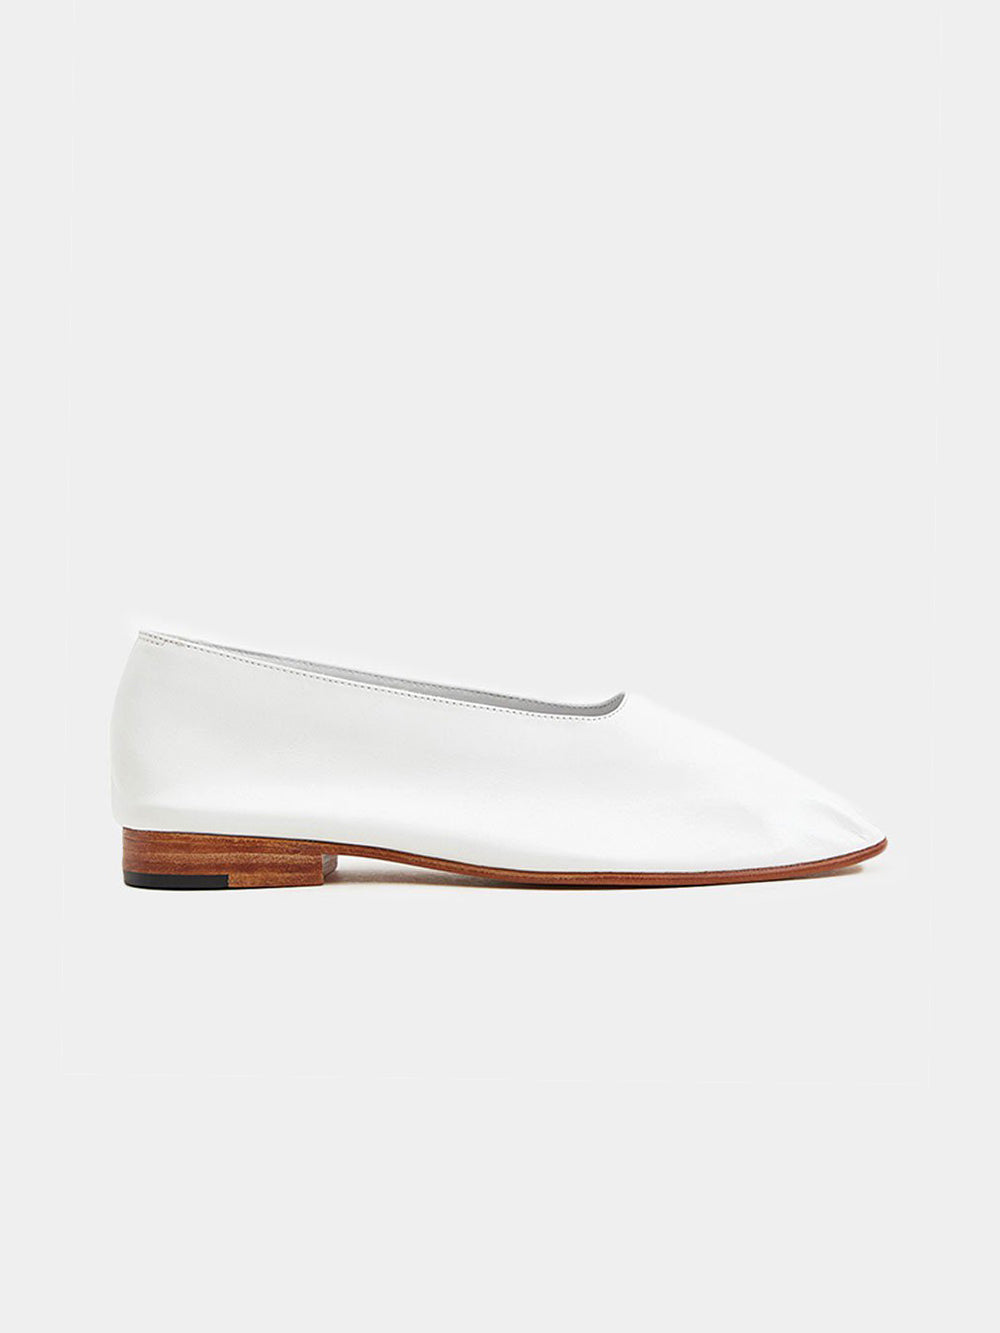 martiniano glove shoe in white